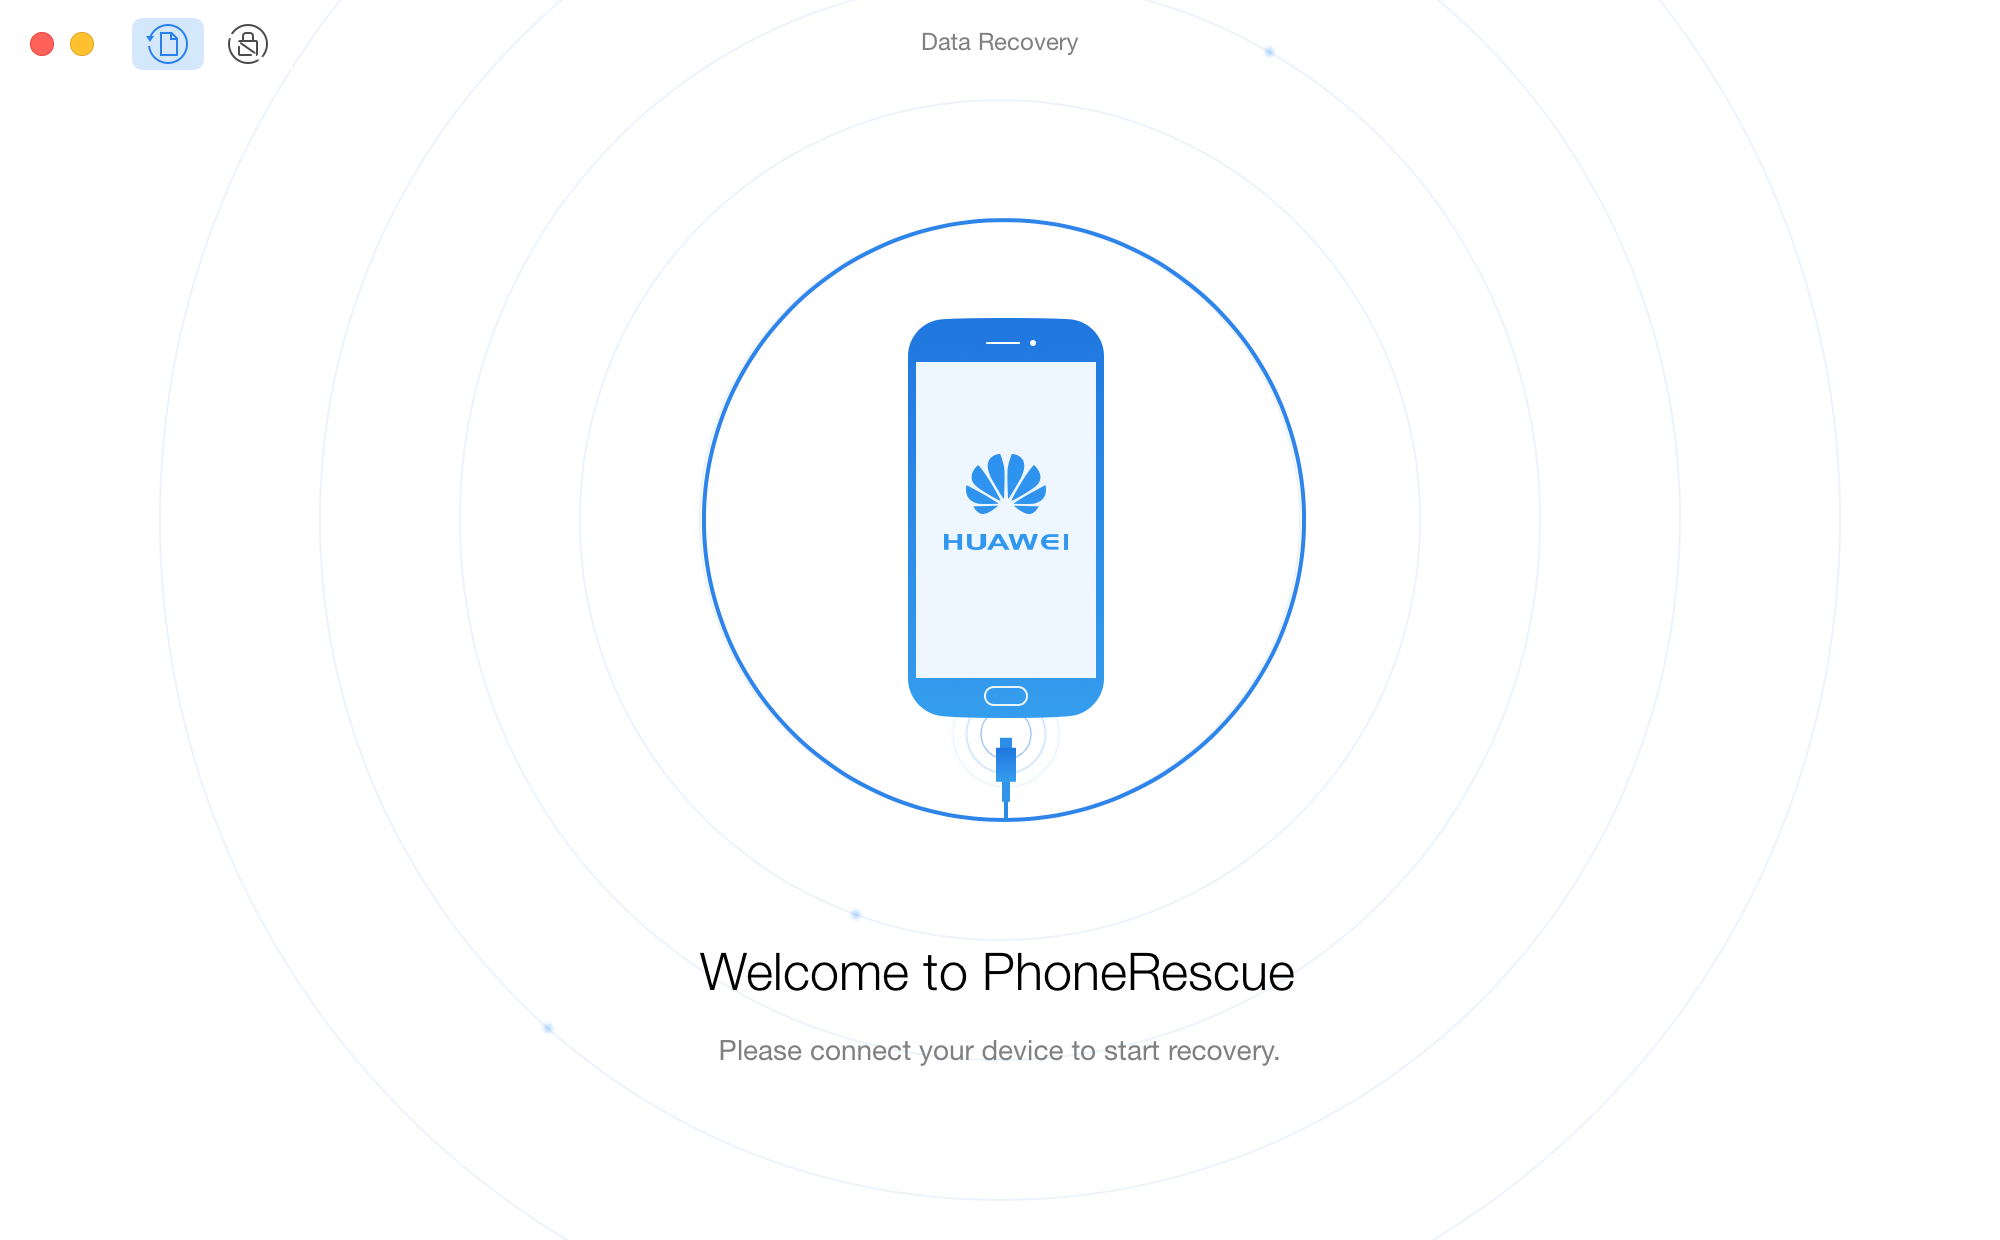 Connecting Your HUAWEI Device